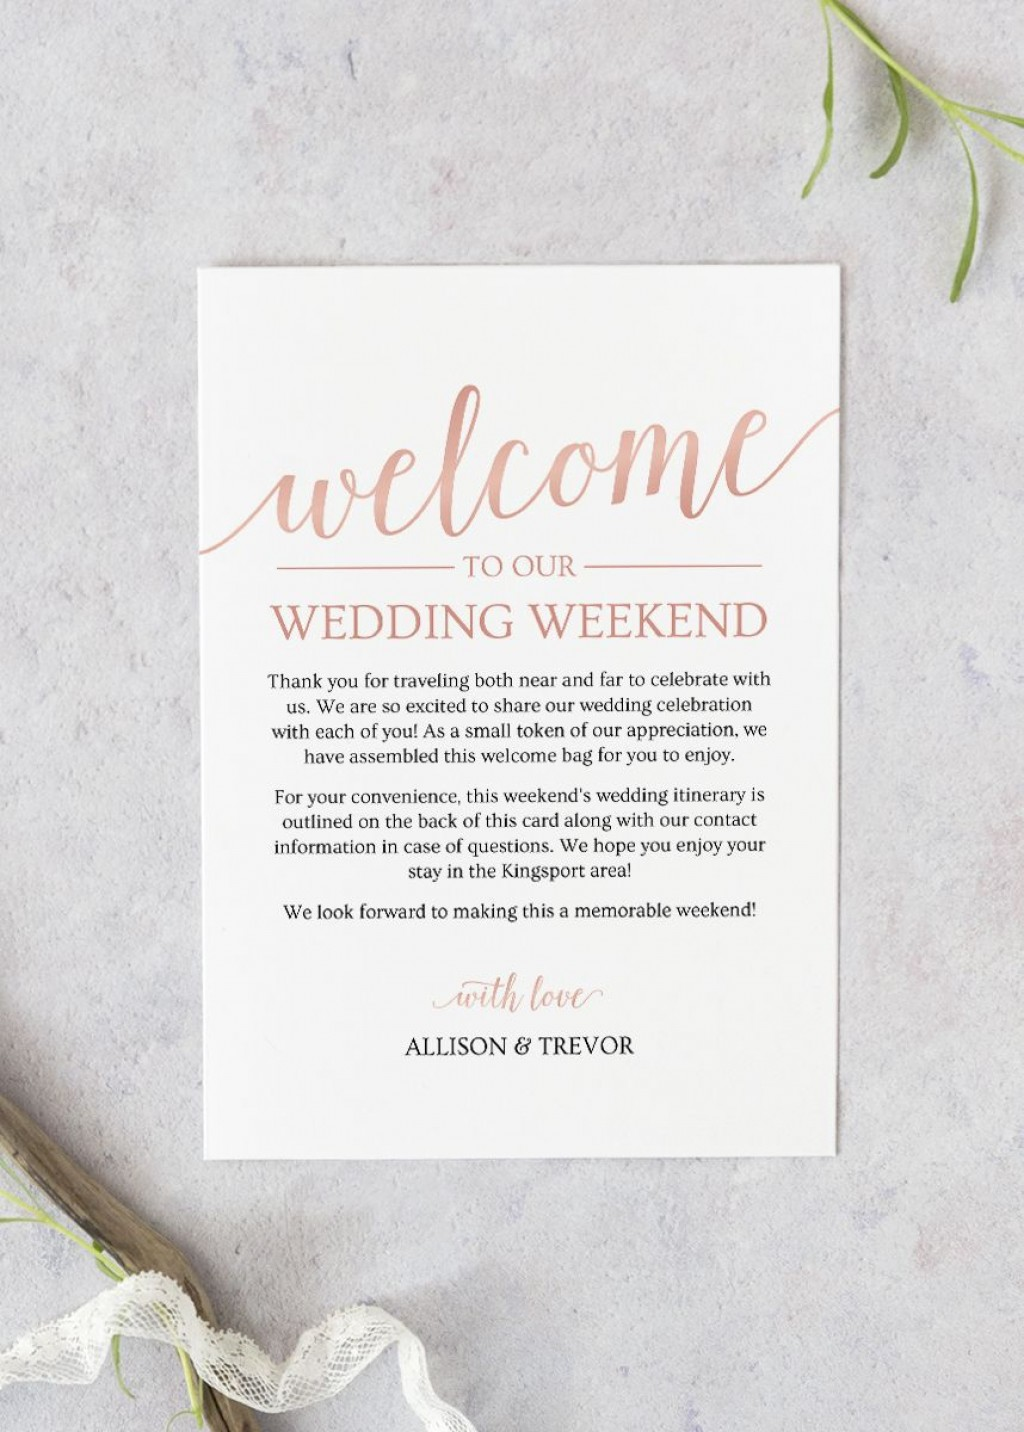 004 Unusual Wedding Welcome Bag Letter Template High Resolution  FreeLarge